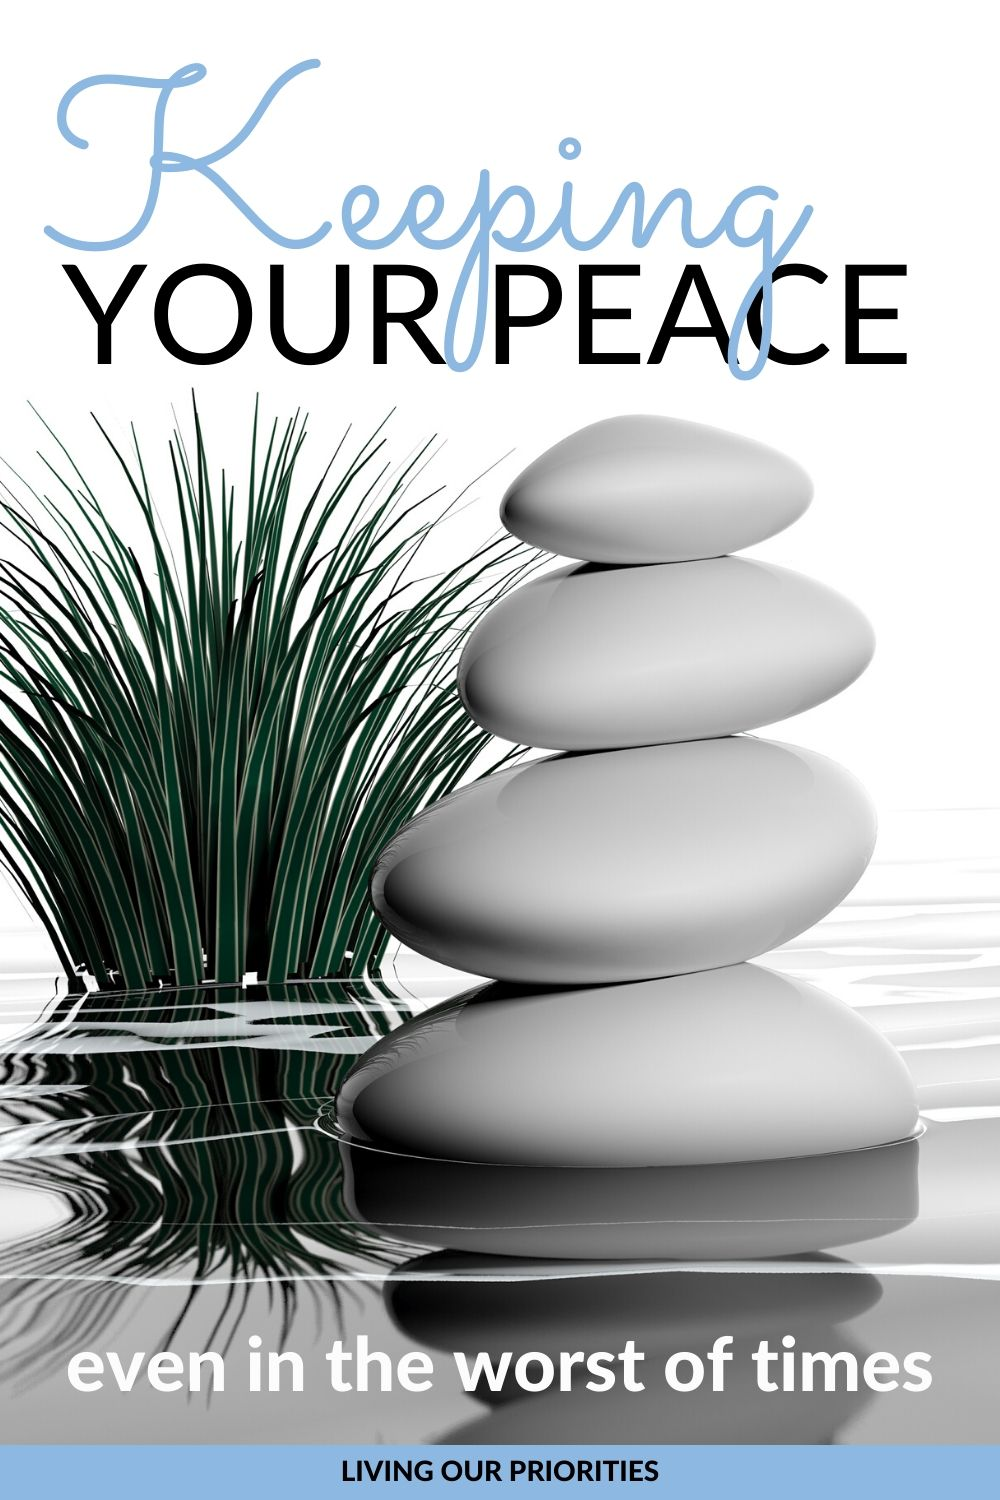 How to keep your peace even in the worst of times. #innerpeace #peace #livingourpriorities